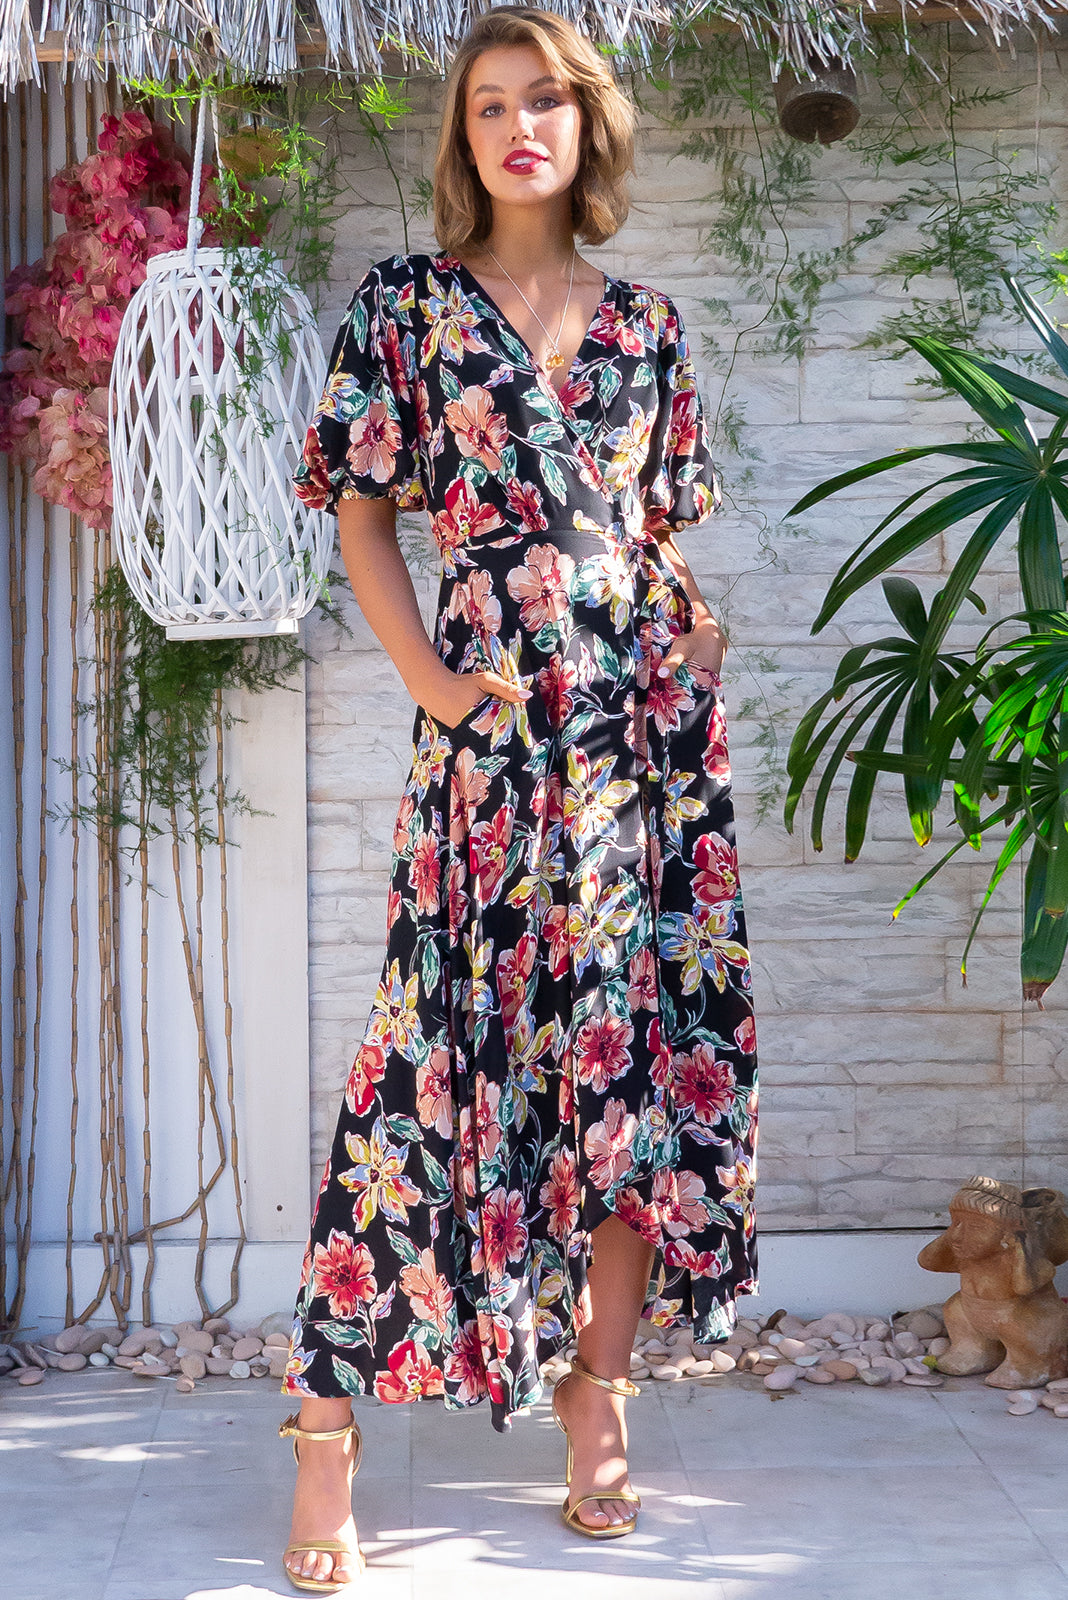 The Posy Blooming Black Maxi Wrap Dress is flattering adjustable wrap design featuring puff sleeves, scooped hemline, elasticated waist band at the back, side pockets and 100% rayon in black base with large retro floral print.